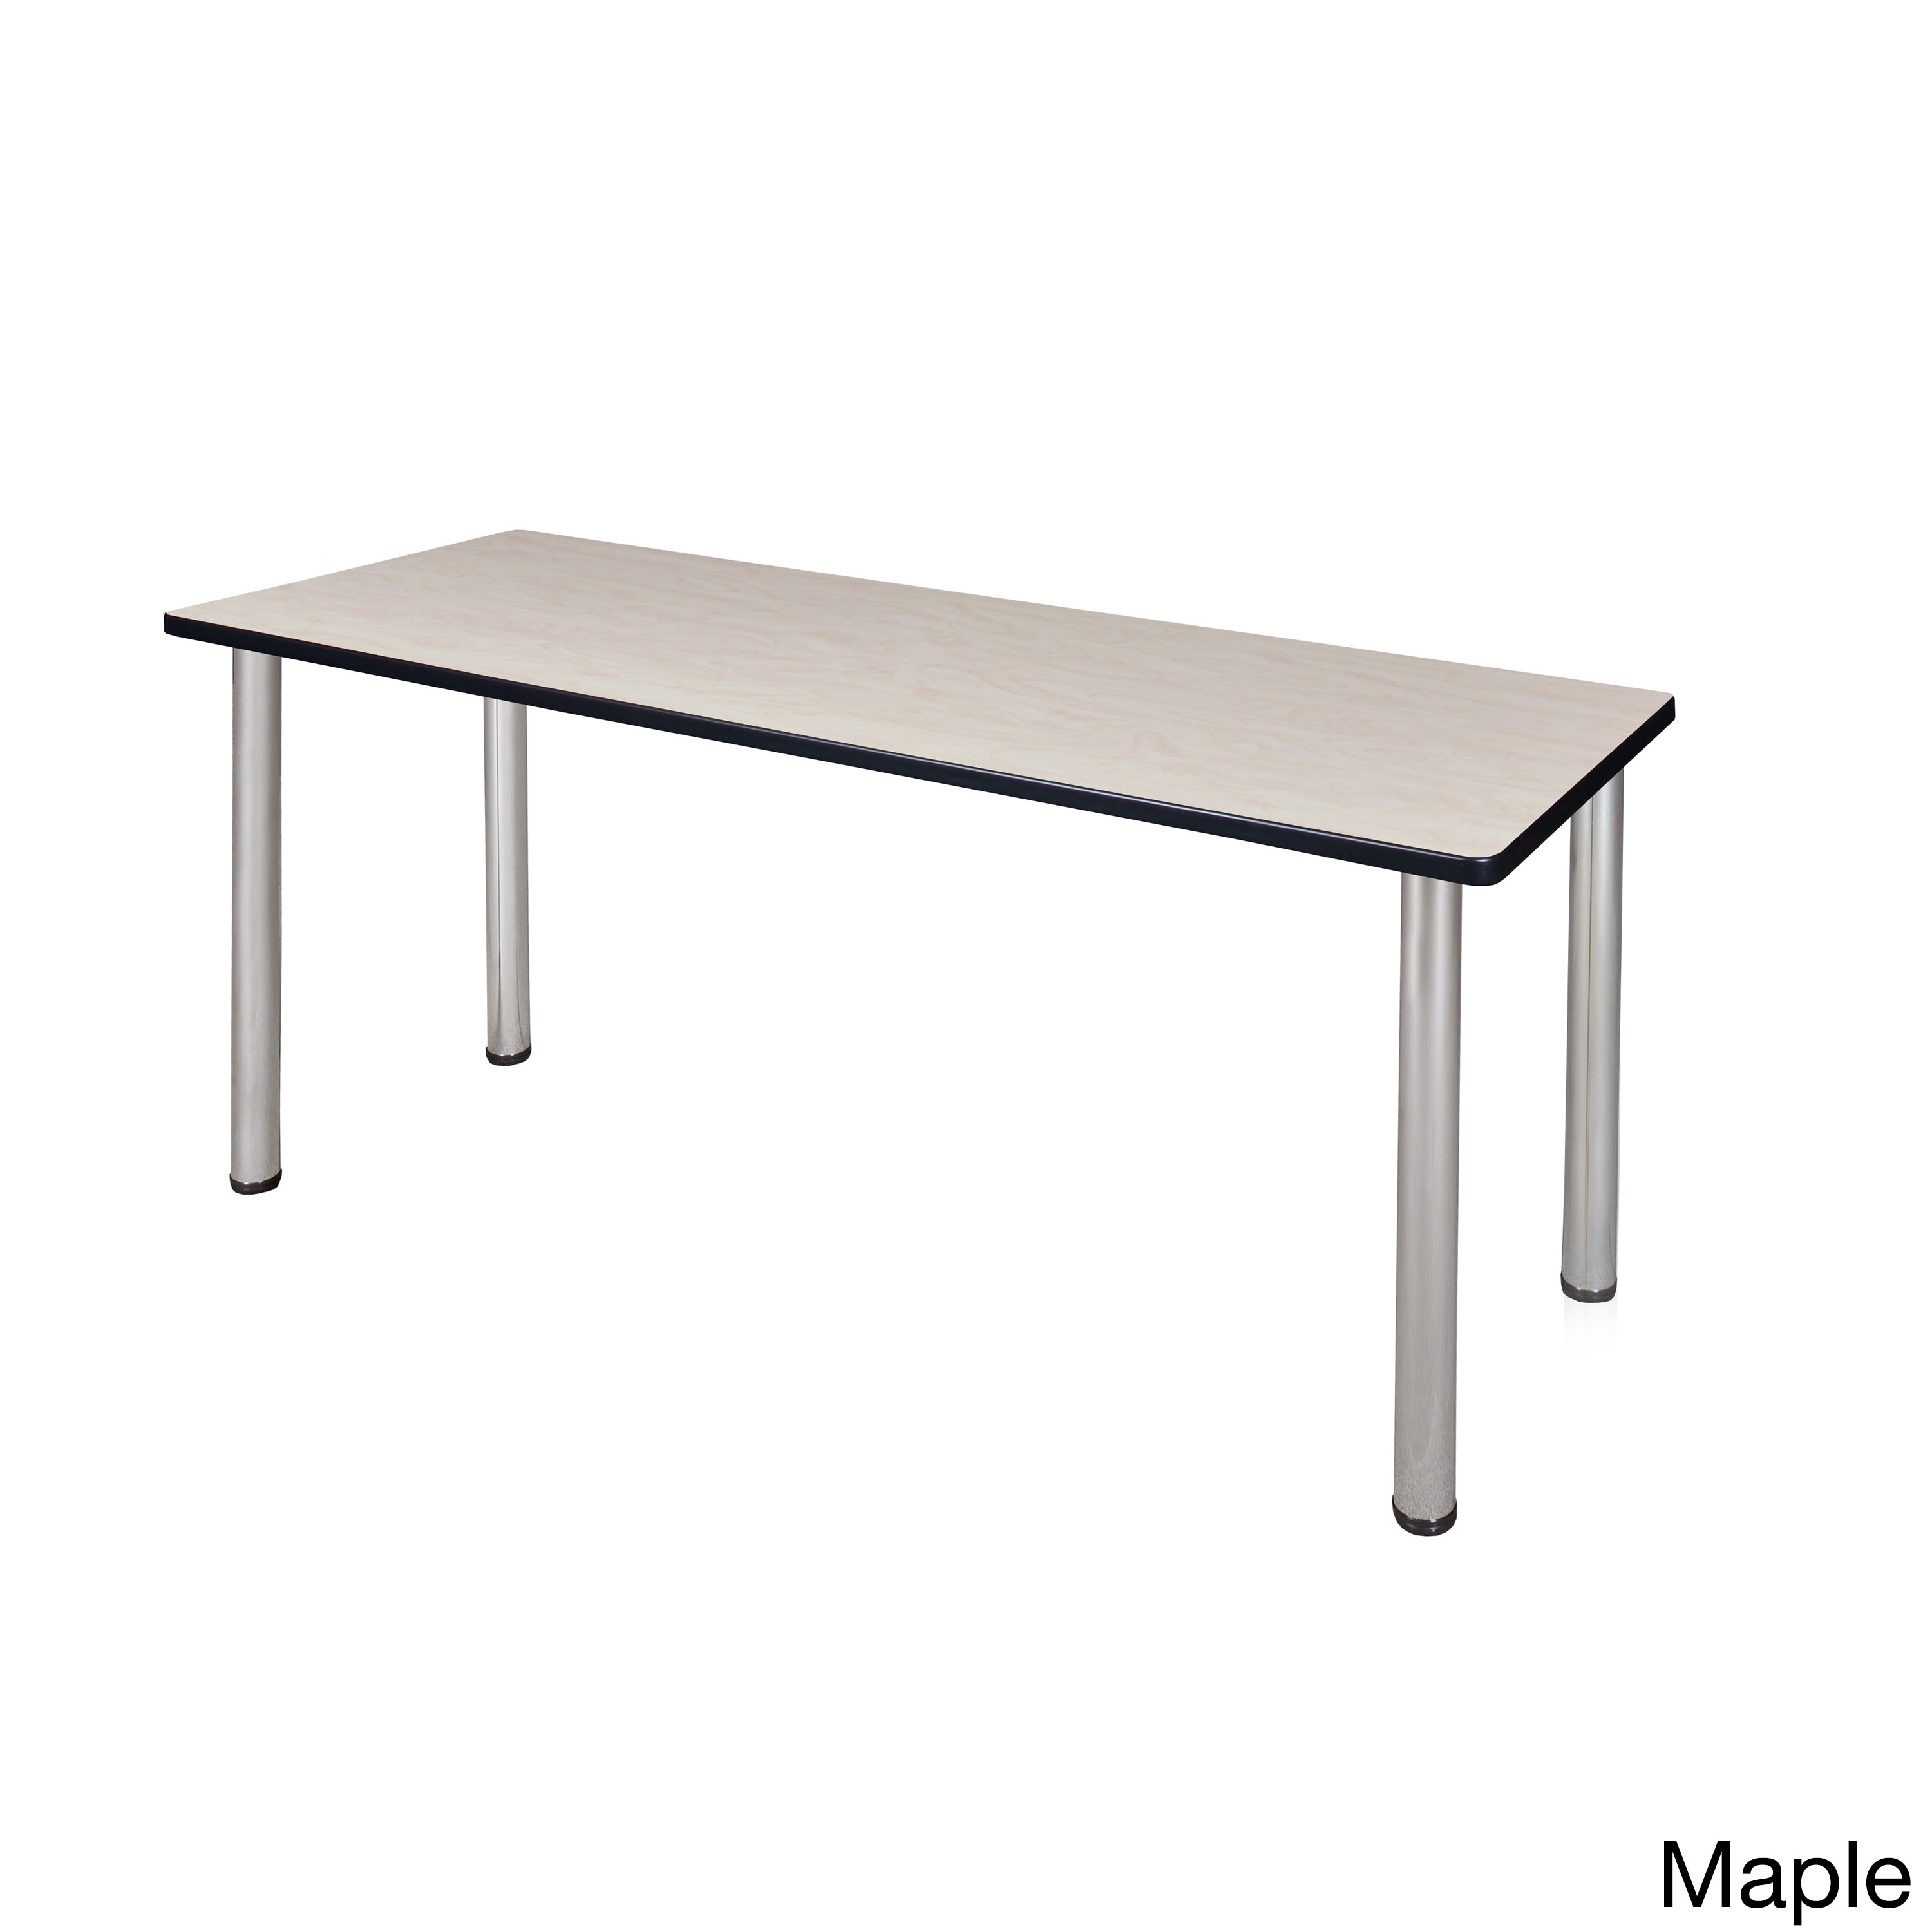 Shop Inch Kee Training Table Chrome Legs Free Shipping Today - Ofm training table